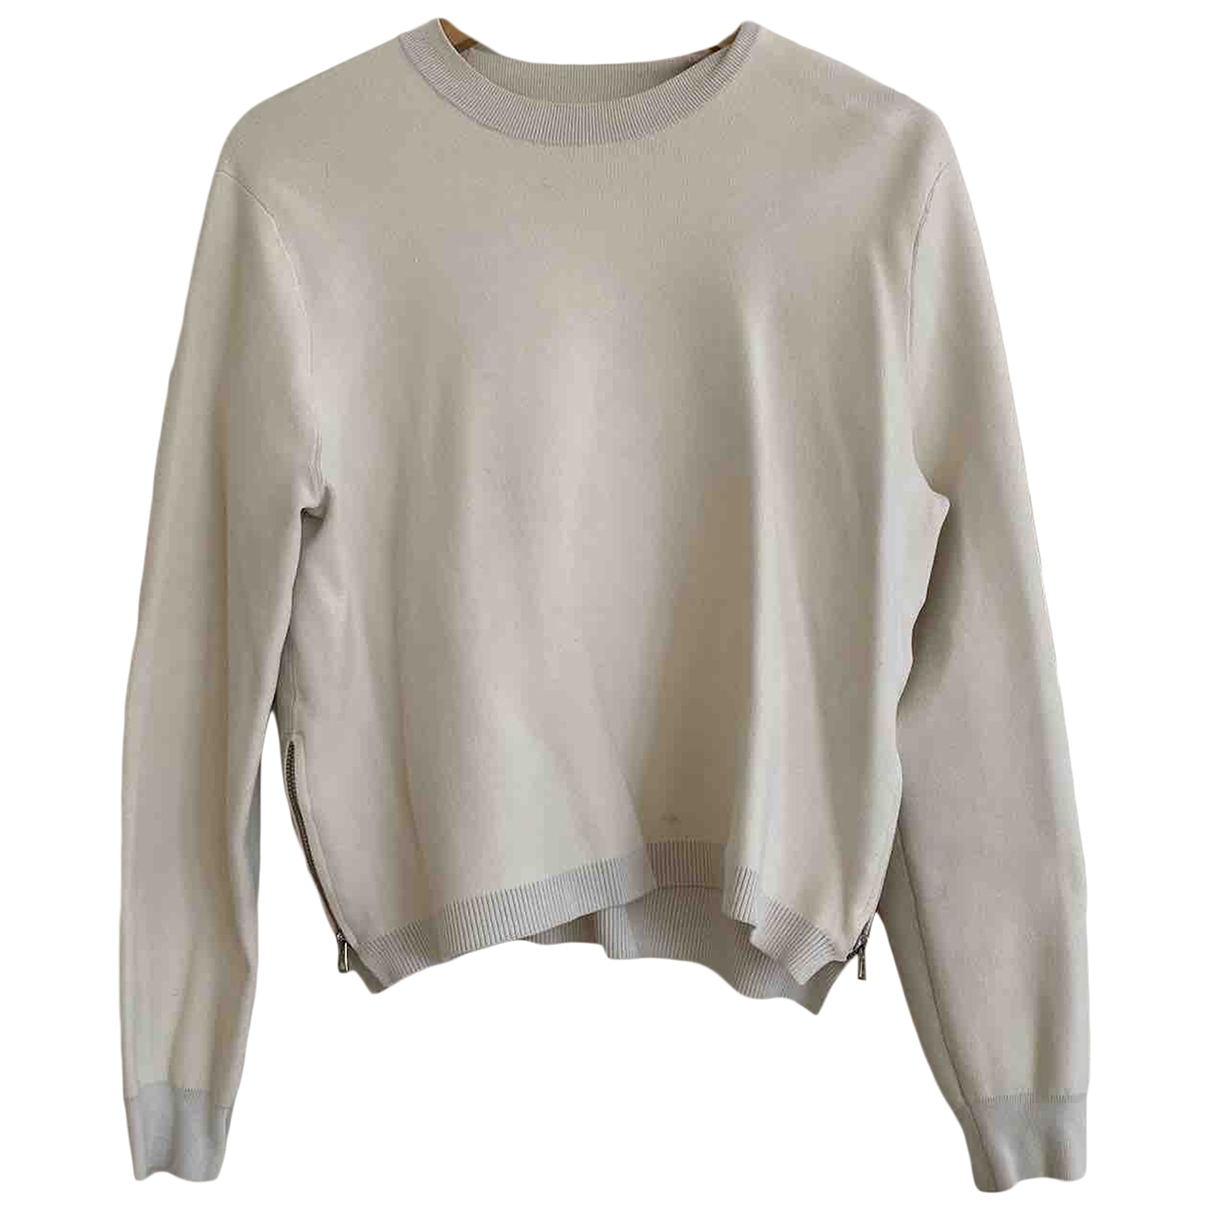 Acne Studios \N Ecru Knitwear for Women S International